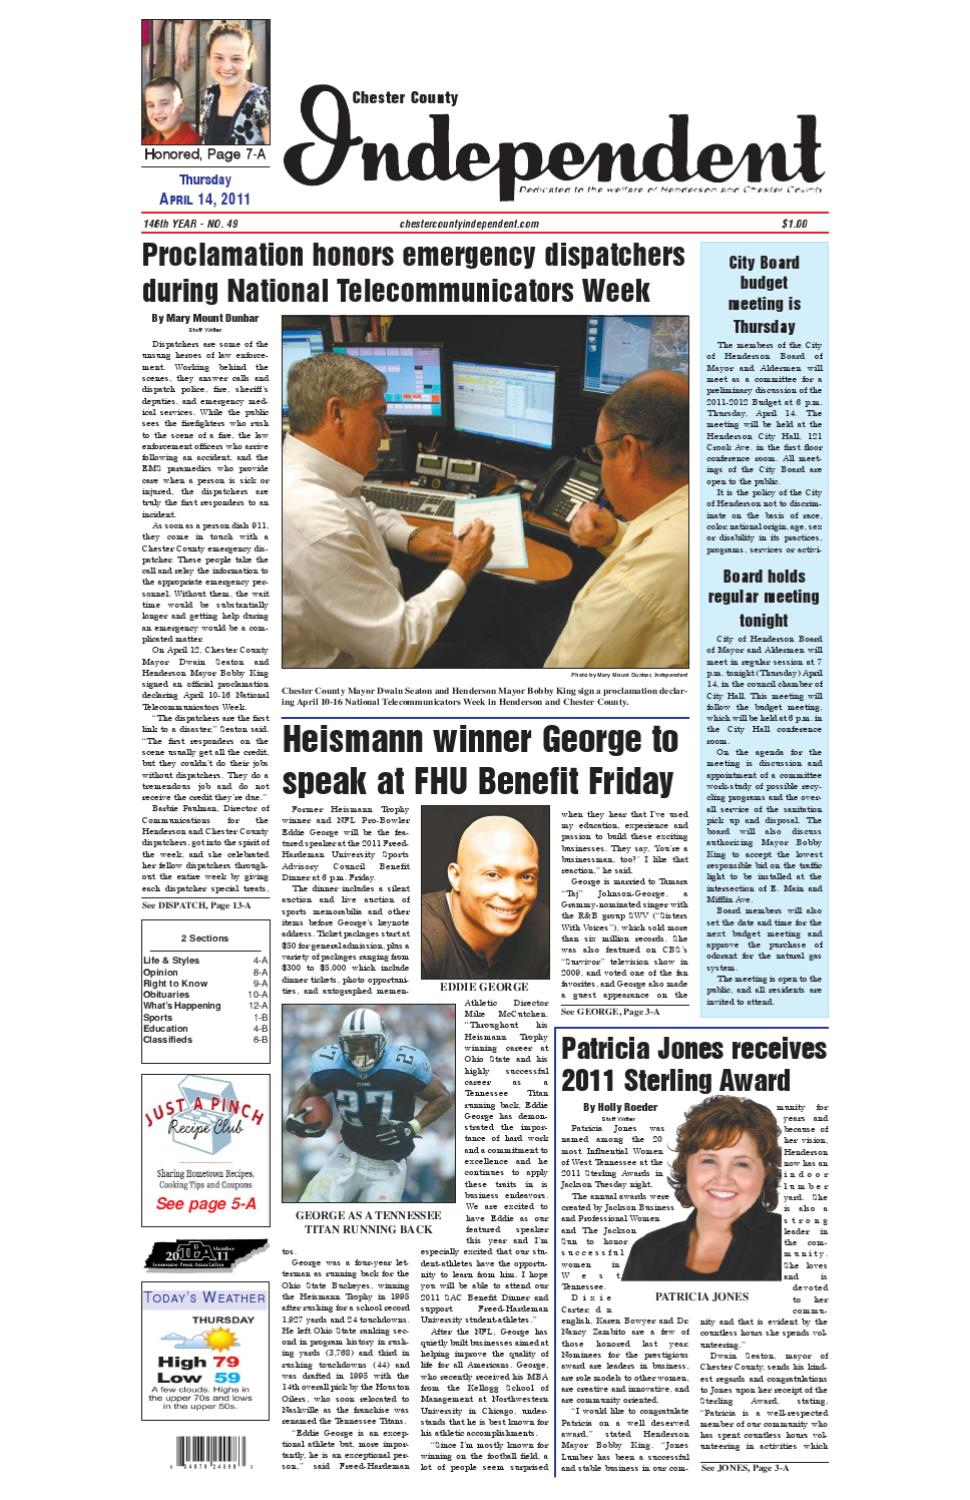 Tennessee chester county enville - Chester County Independent 04 14 11 By Chester County Independent Issuu